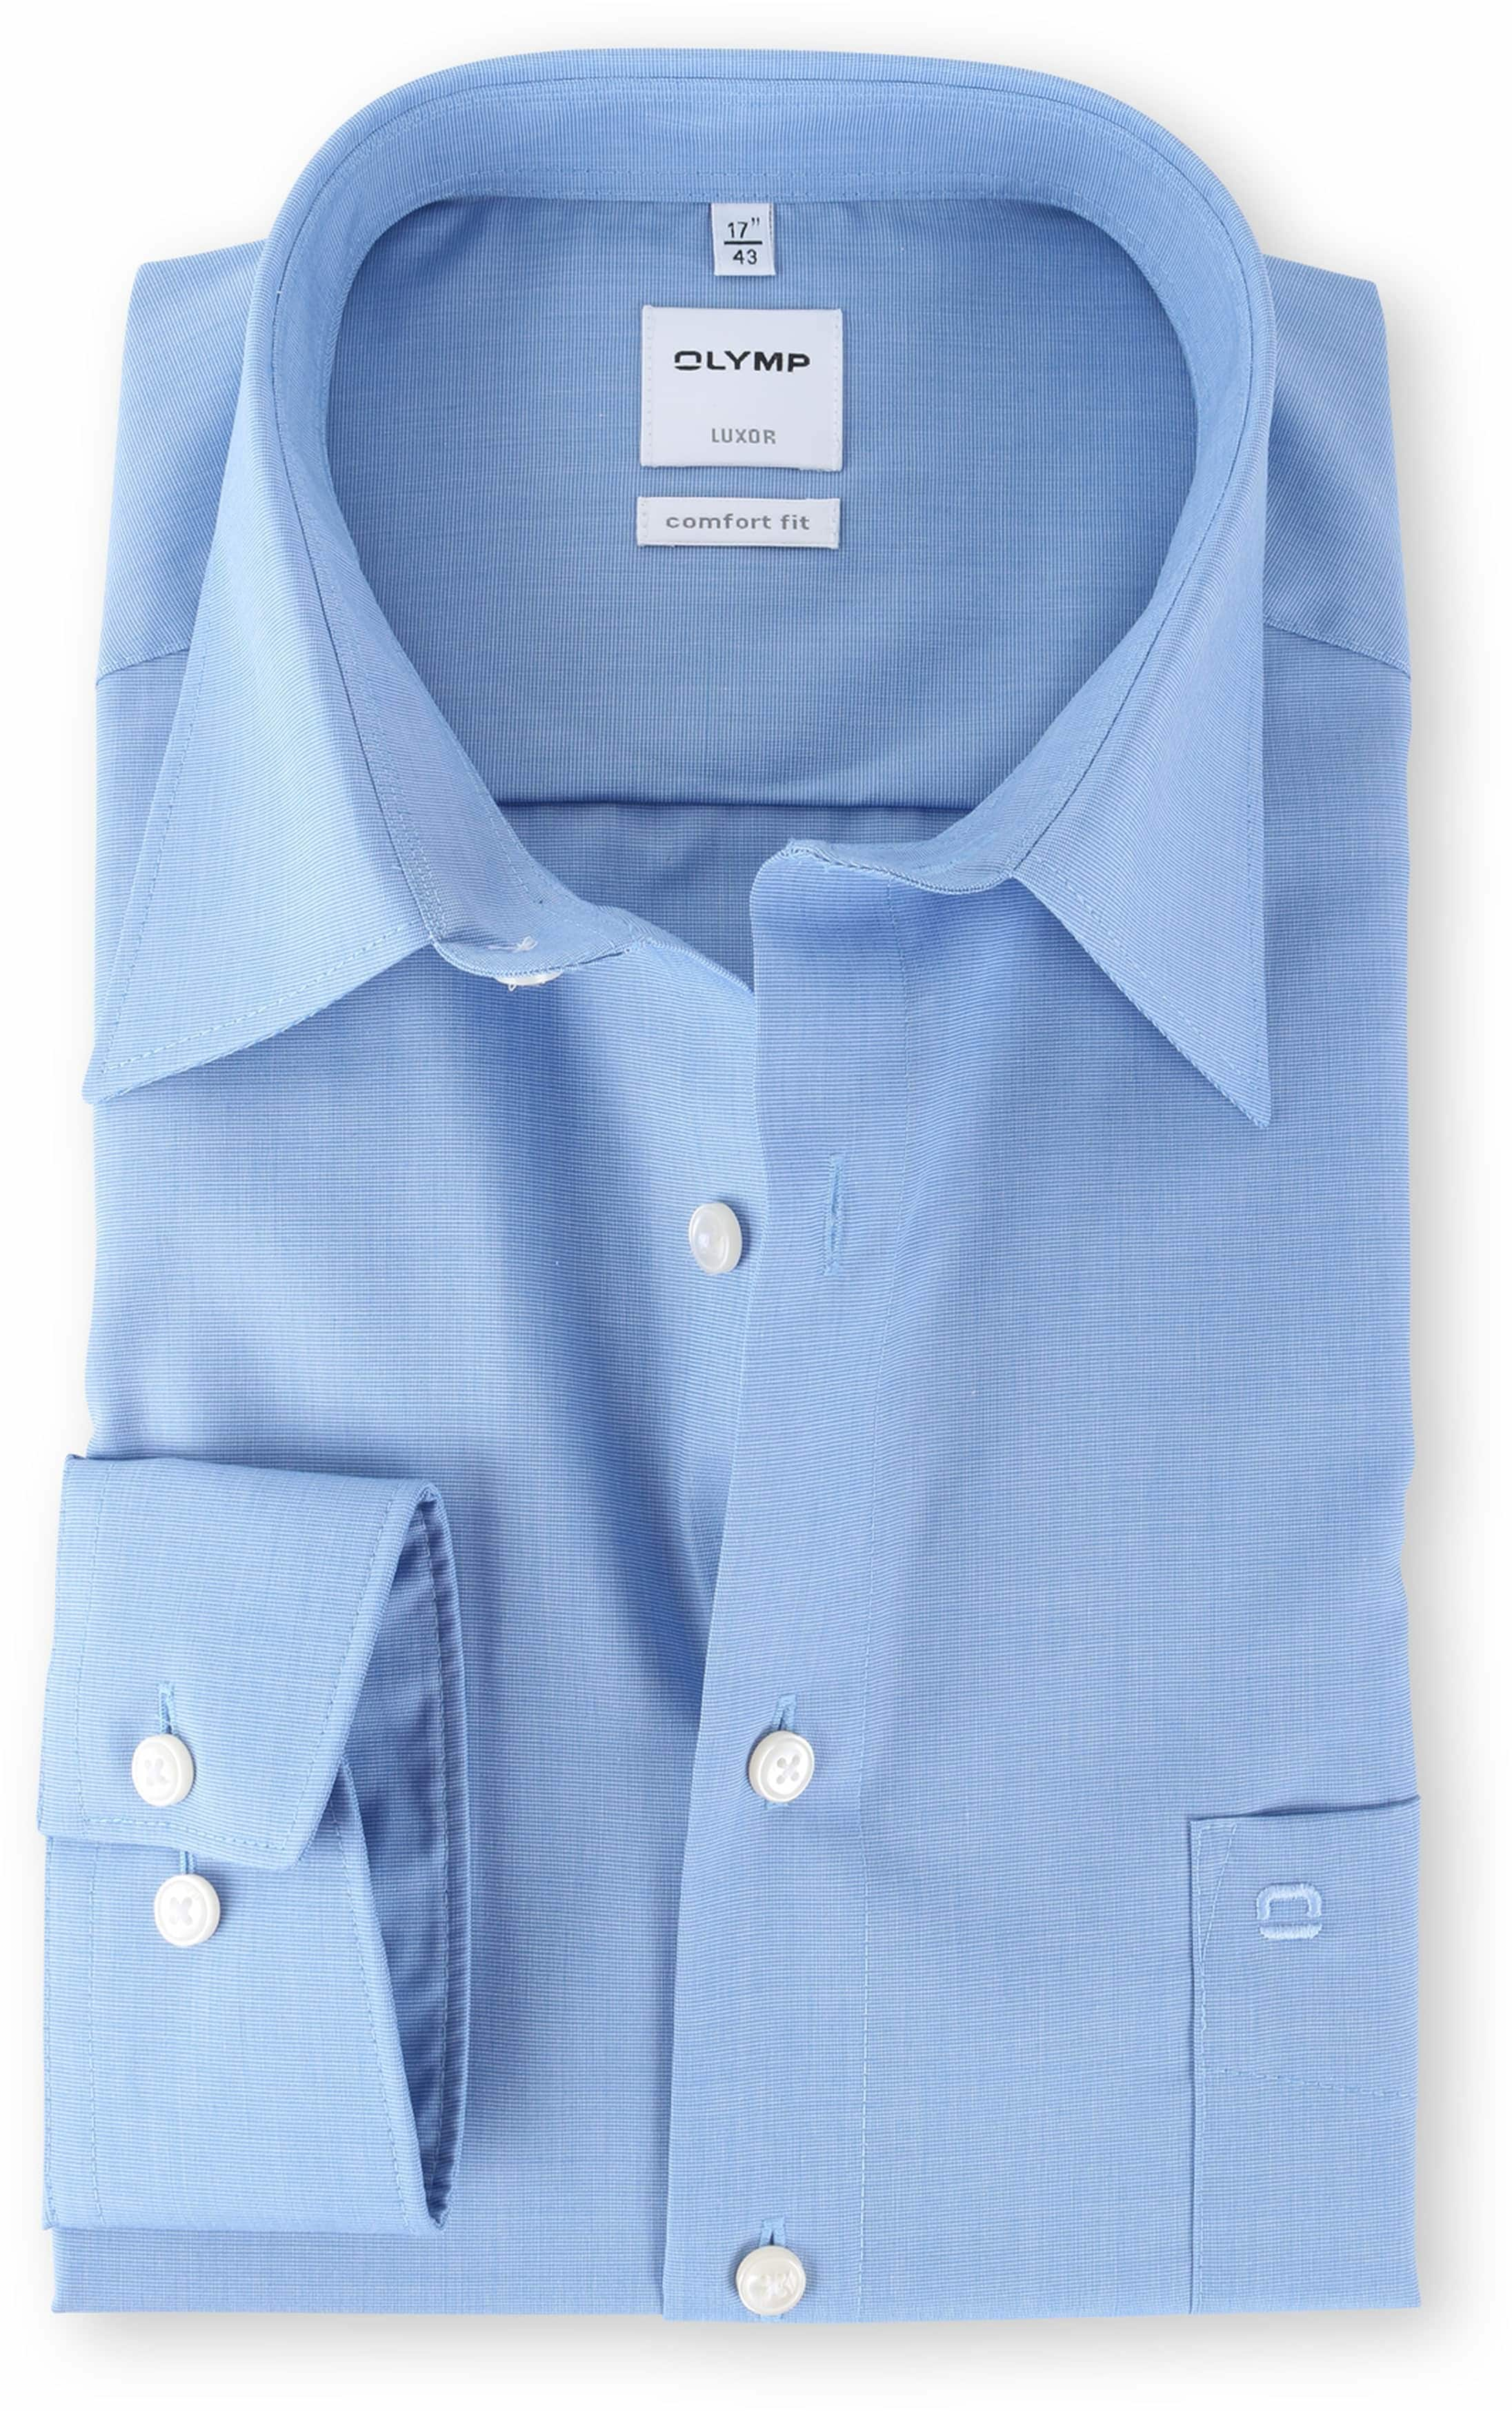 arrives look out for separation shoes Olymp Luxor Shirt Blue Comfort Fit 025564